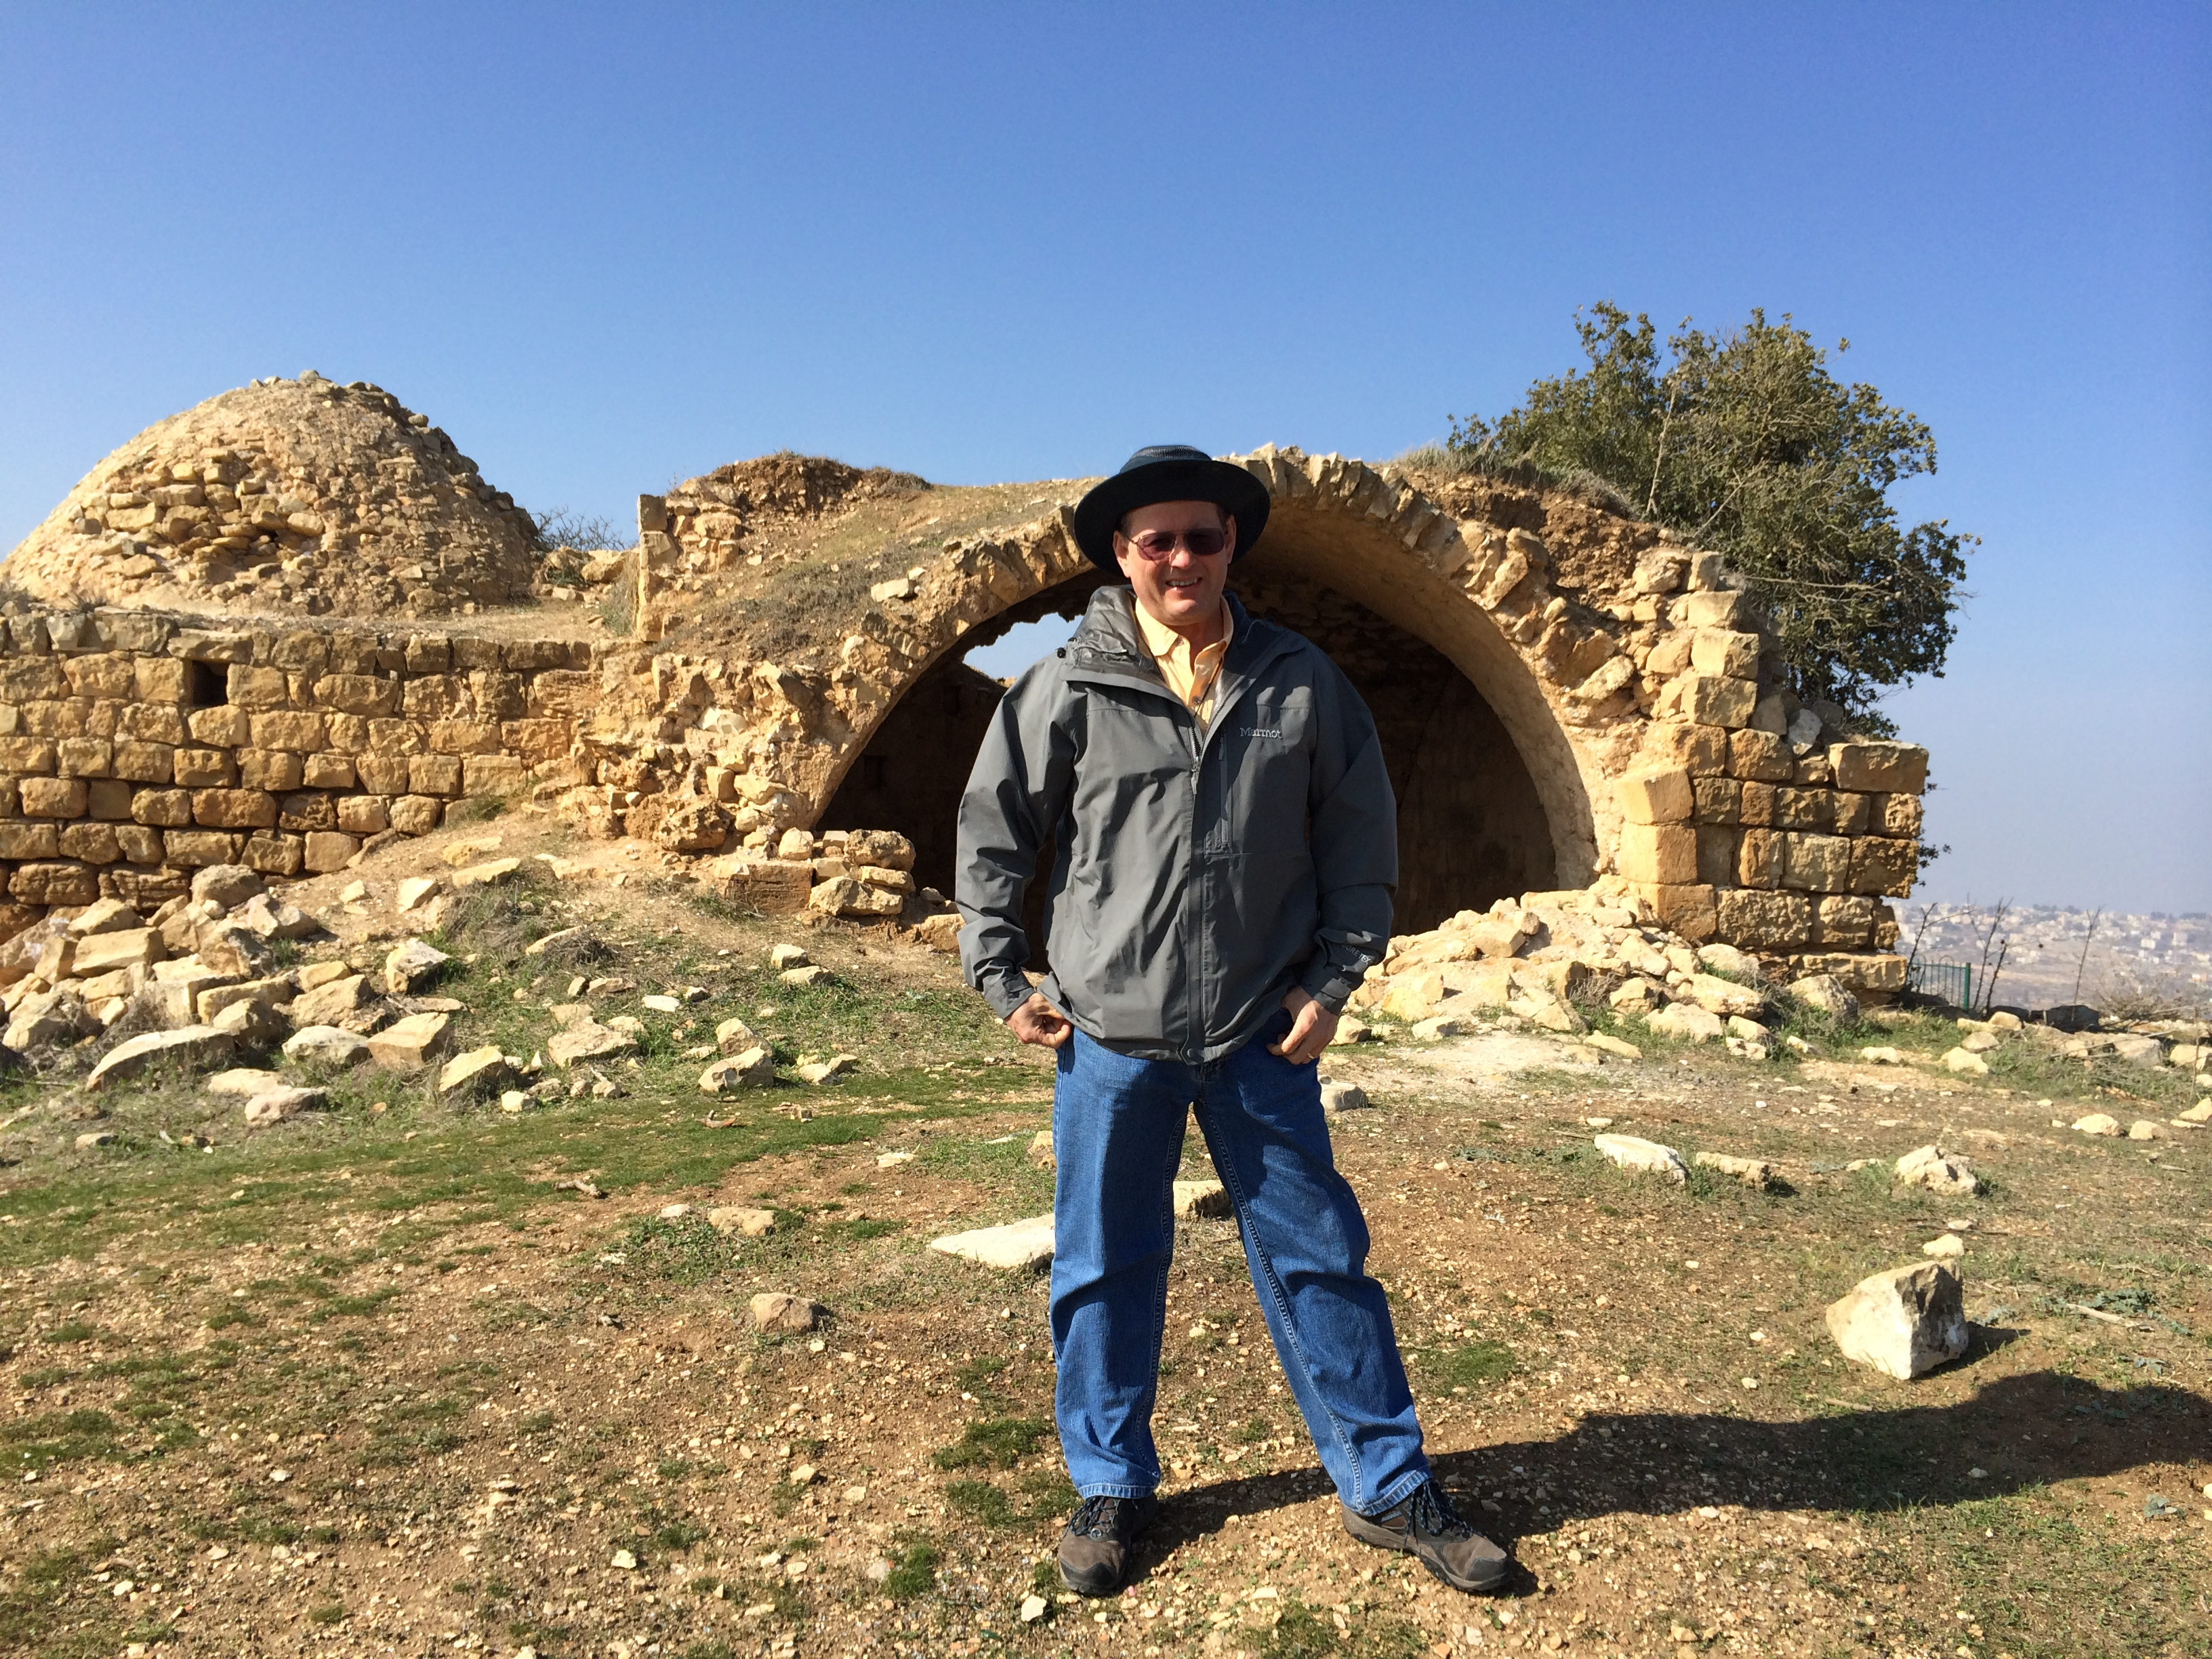 Bethel Israel: Discovered The Place Where Jacob Fell Asleep And Saw The